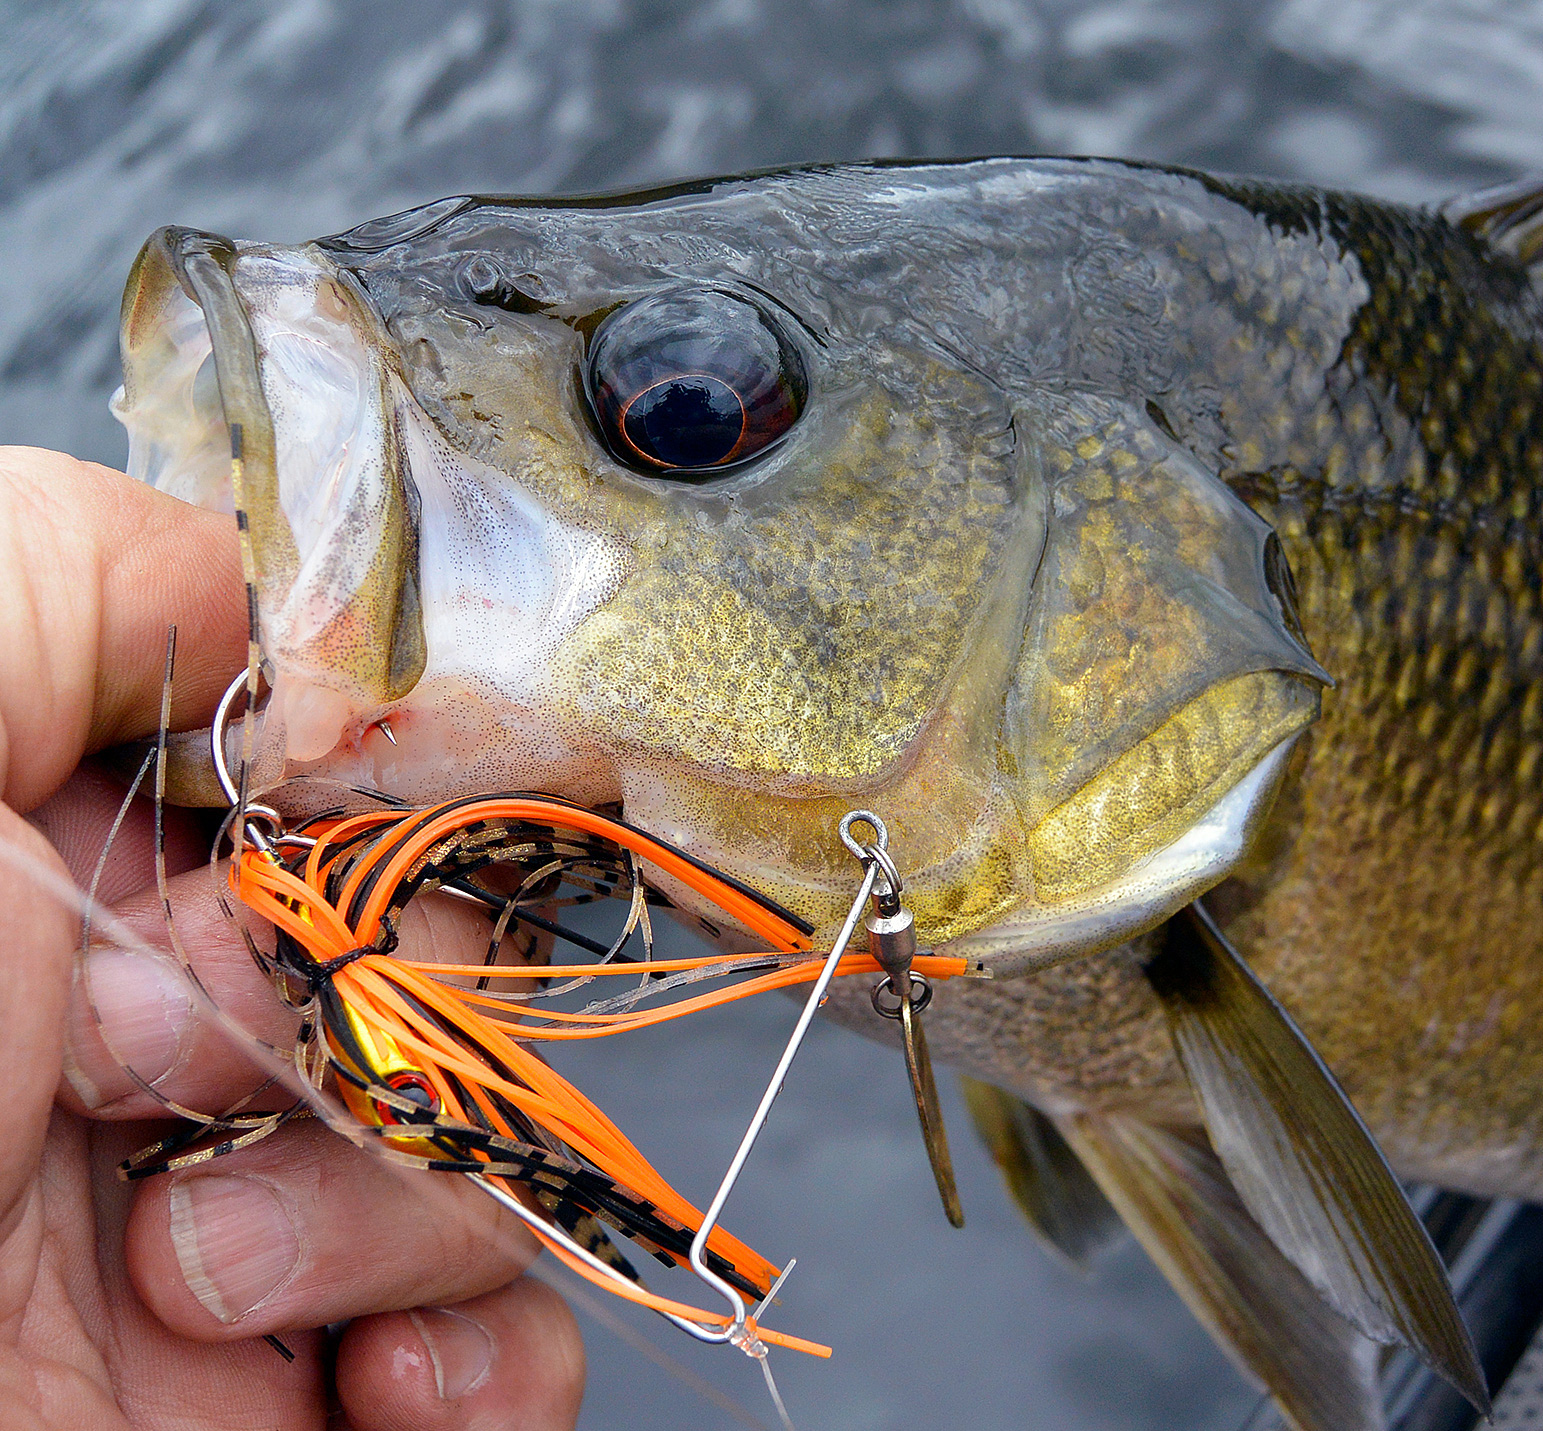 Spinnerbaits work as well on the bass in Brogo as they do most places.